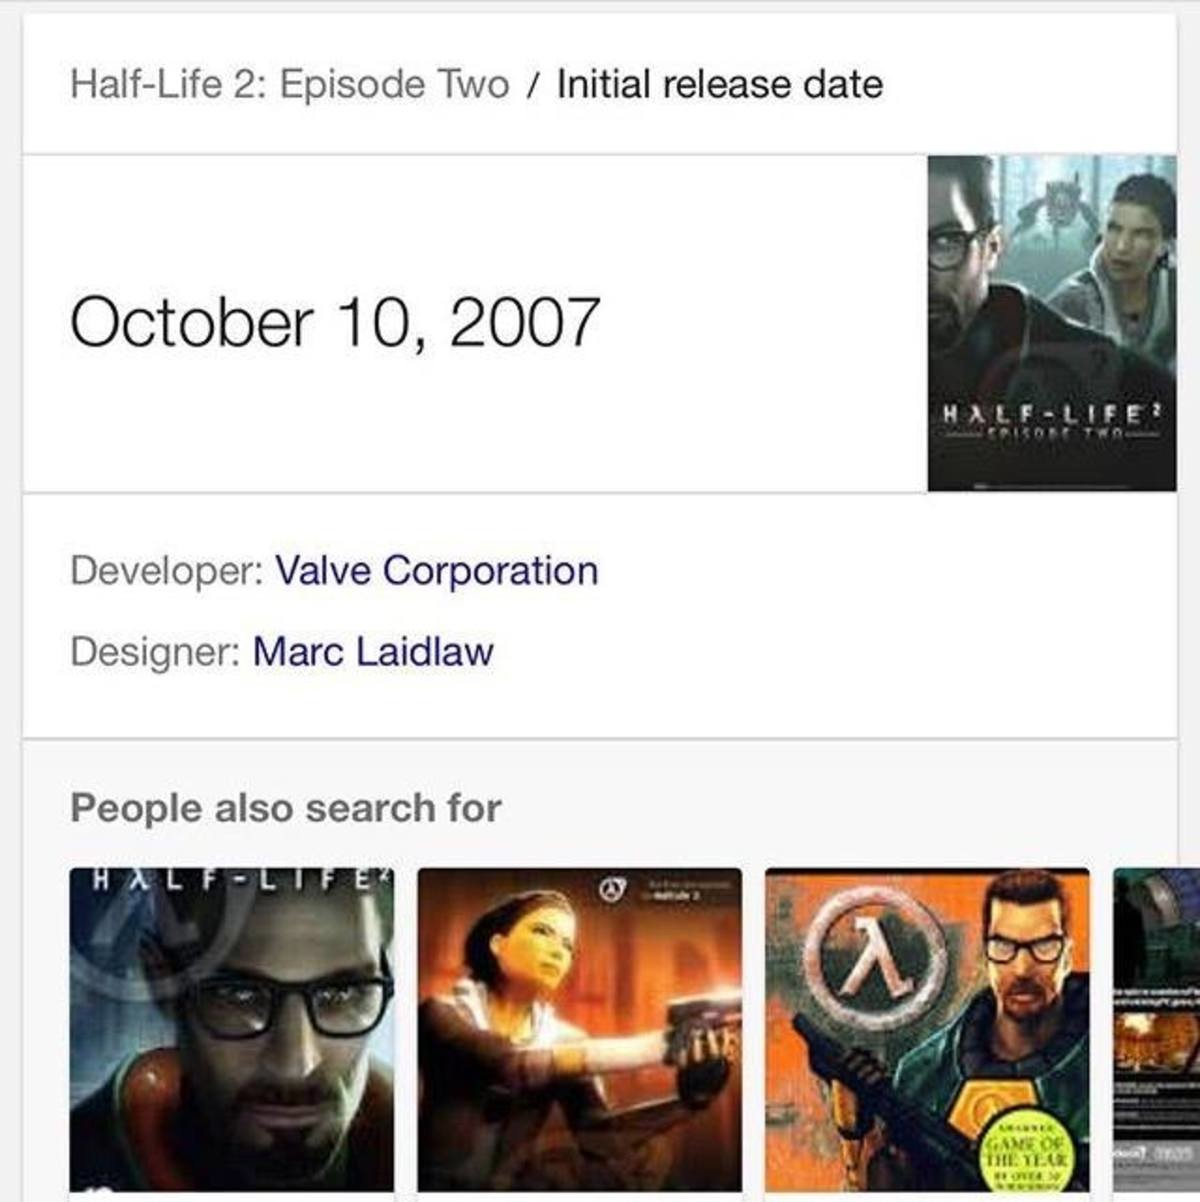 On This Day In History. . 2: Episode Two I Initial release date Developer: Valve C) opperation Designer: Marc People also search for